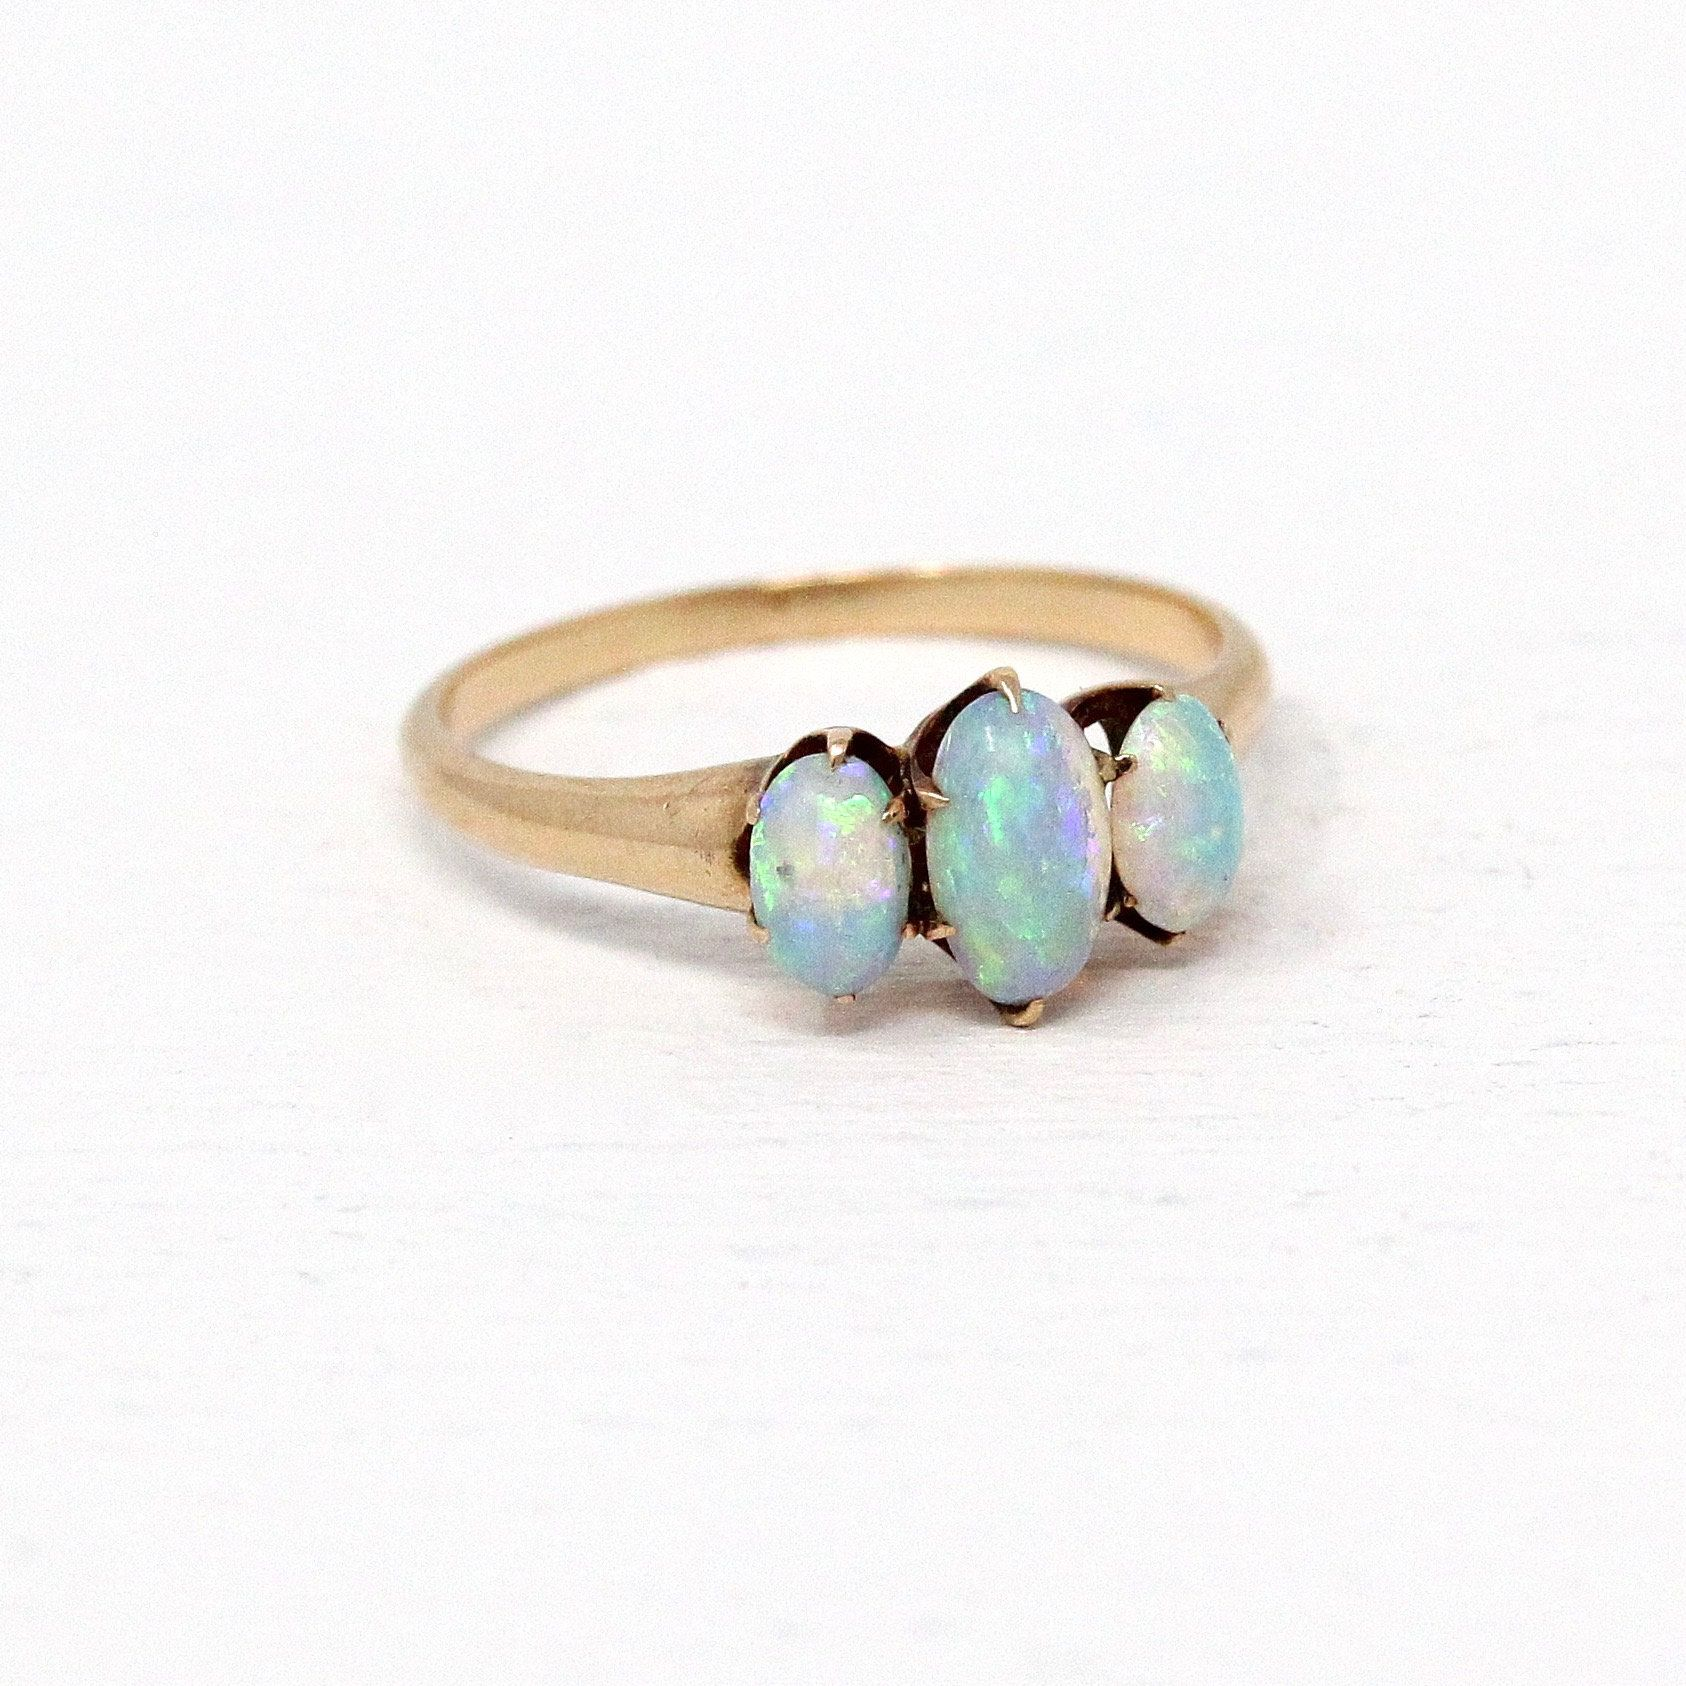 Vintage Opal Ring 10k Yellow Gold Three Stone Cabochon Gemstone Band Antique Edwardian Size 6 October B Opal Ring Vintage Antique Opal Ring Antique Jewelry